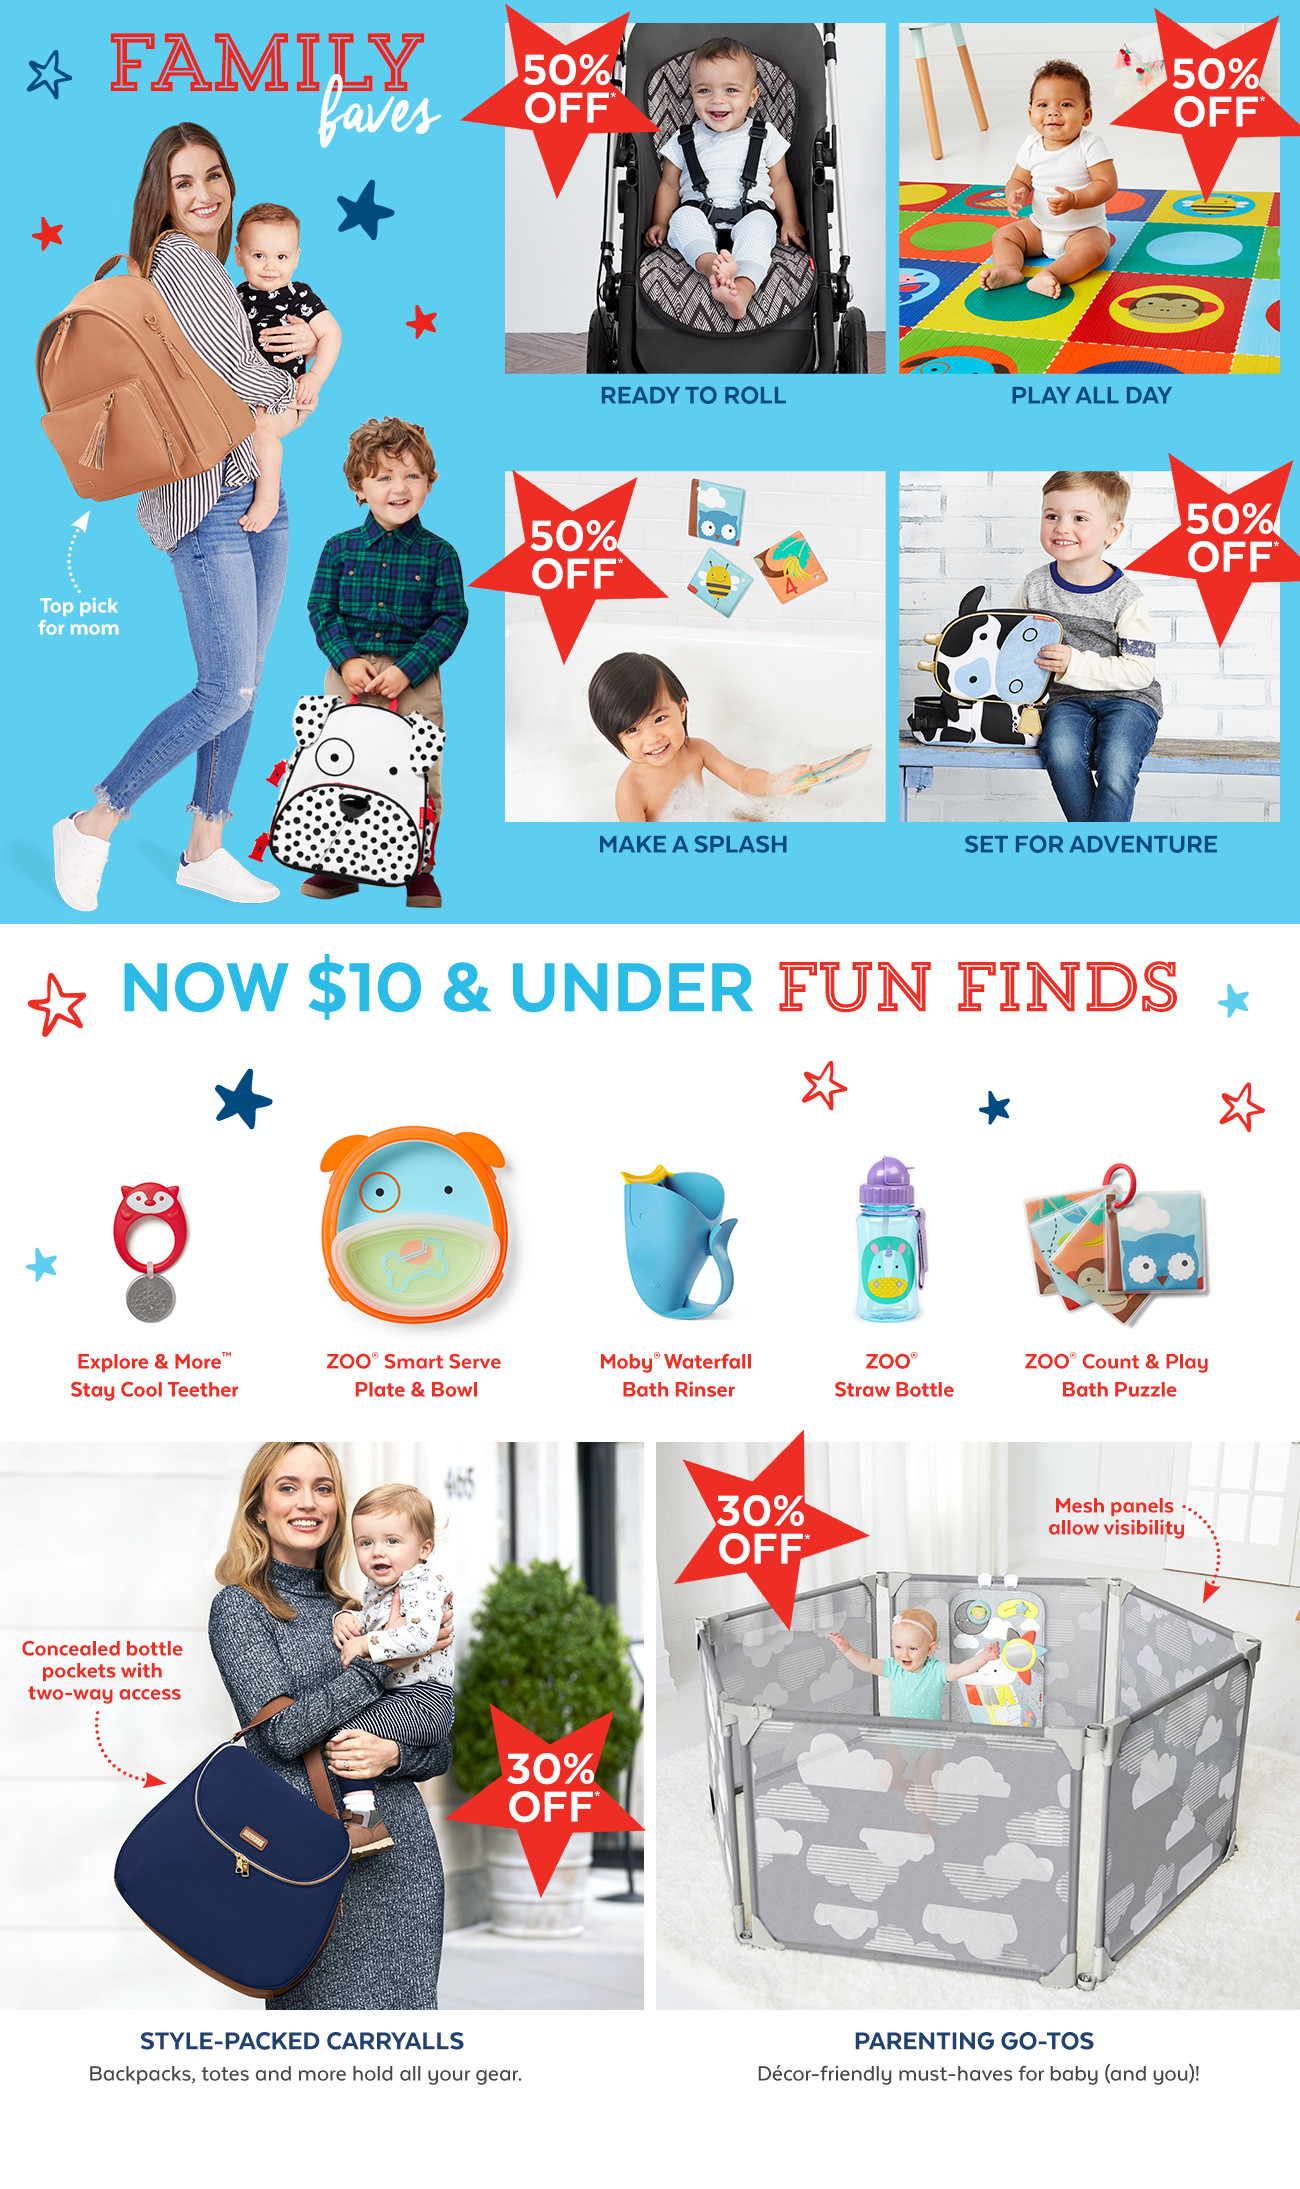 family faves 50% off   now $10 & under fun friends   30% off carryalls and parenting to-gos